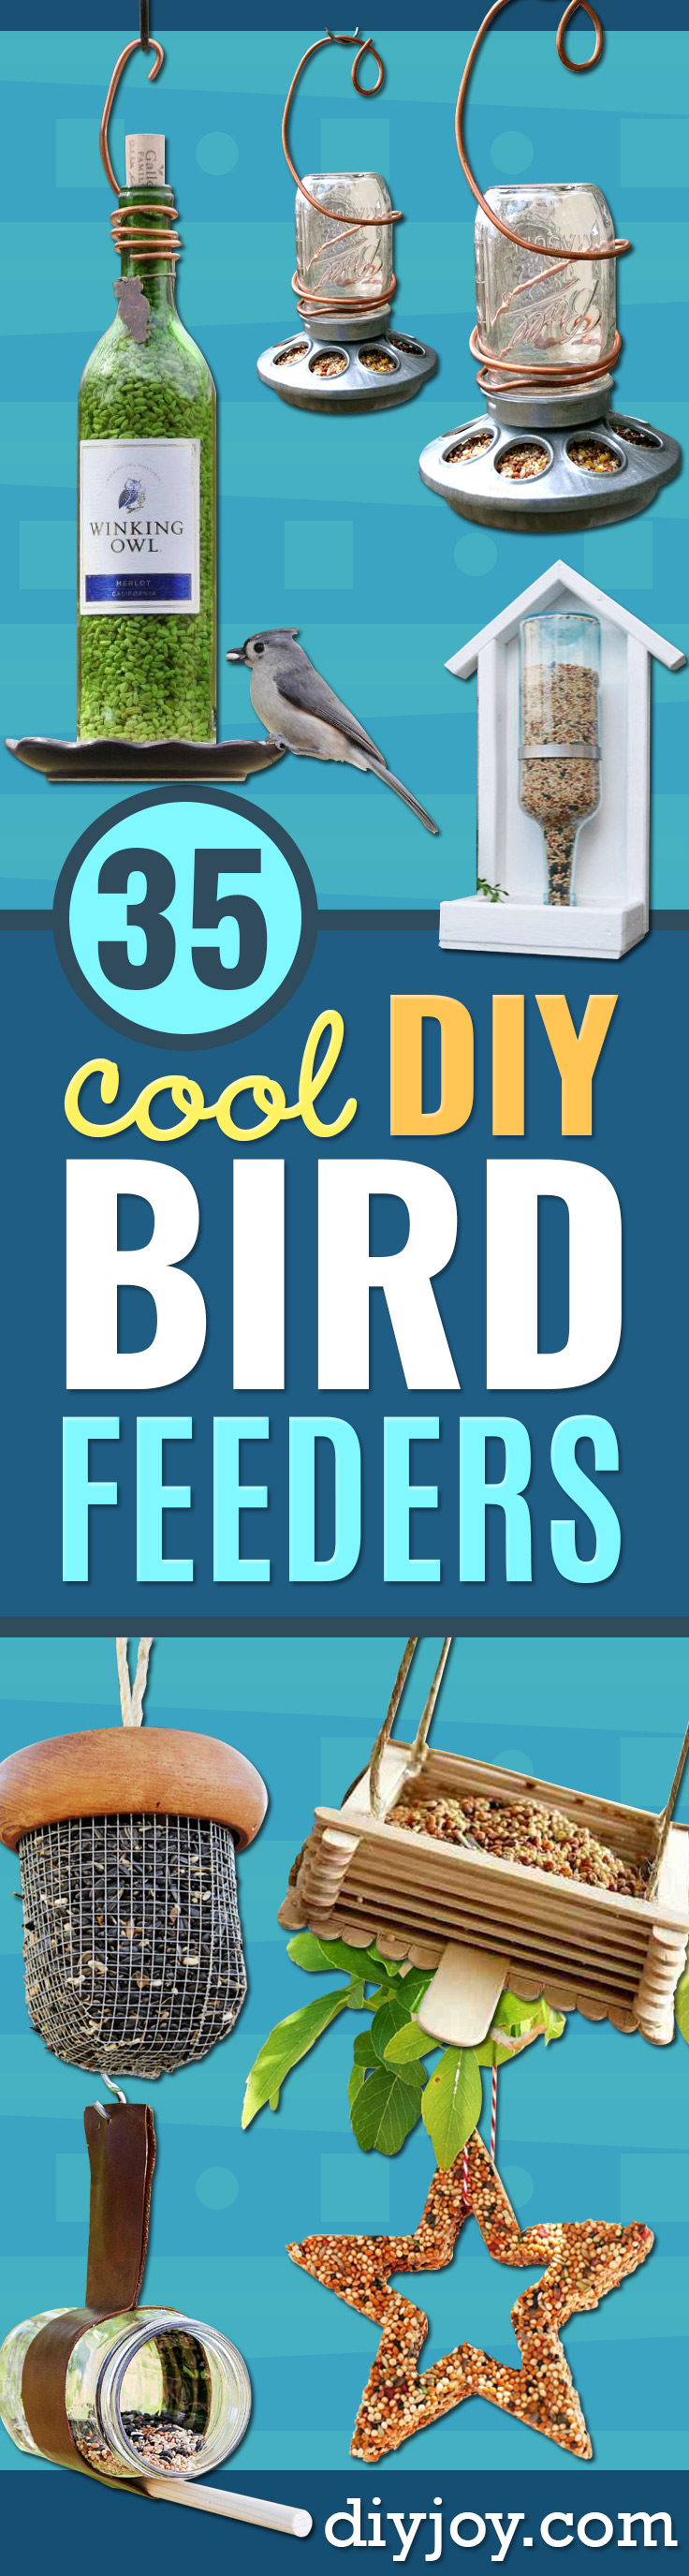 DIY Bird Feeders - Easy Do It Yourself Homemade Bird Feeder Ideas from Mason Jar, Wooden, Wine Bottle, Milk Jug, Plastic, Dollar Store Supplies - Squirrel Proof, Unique and Creative Tutorials That Make Cool DIY Gifts #birds